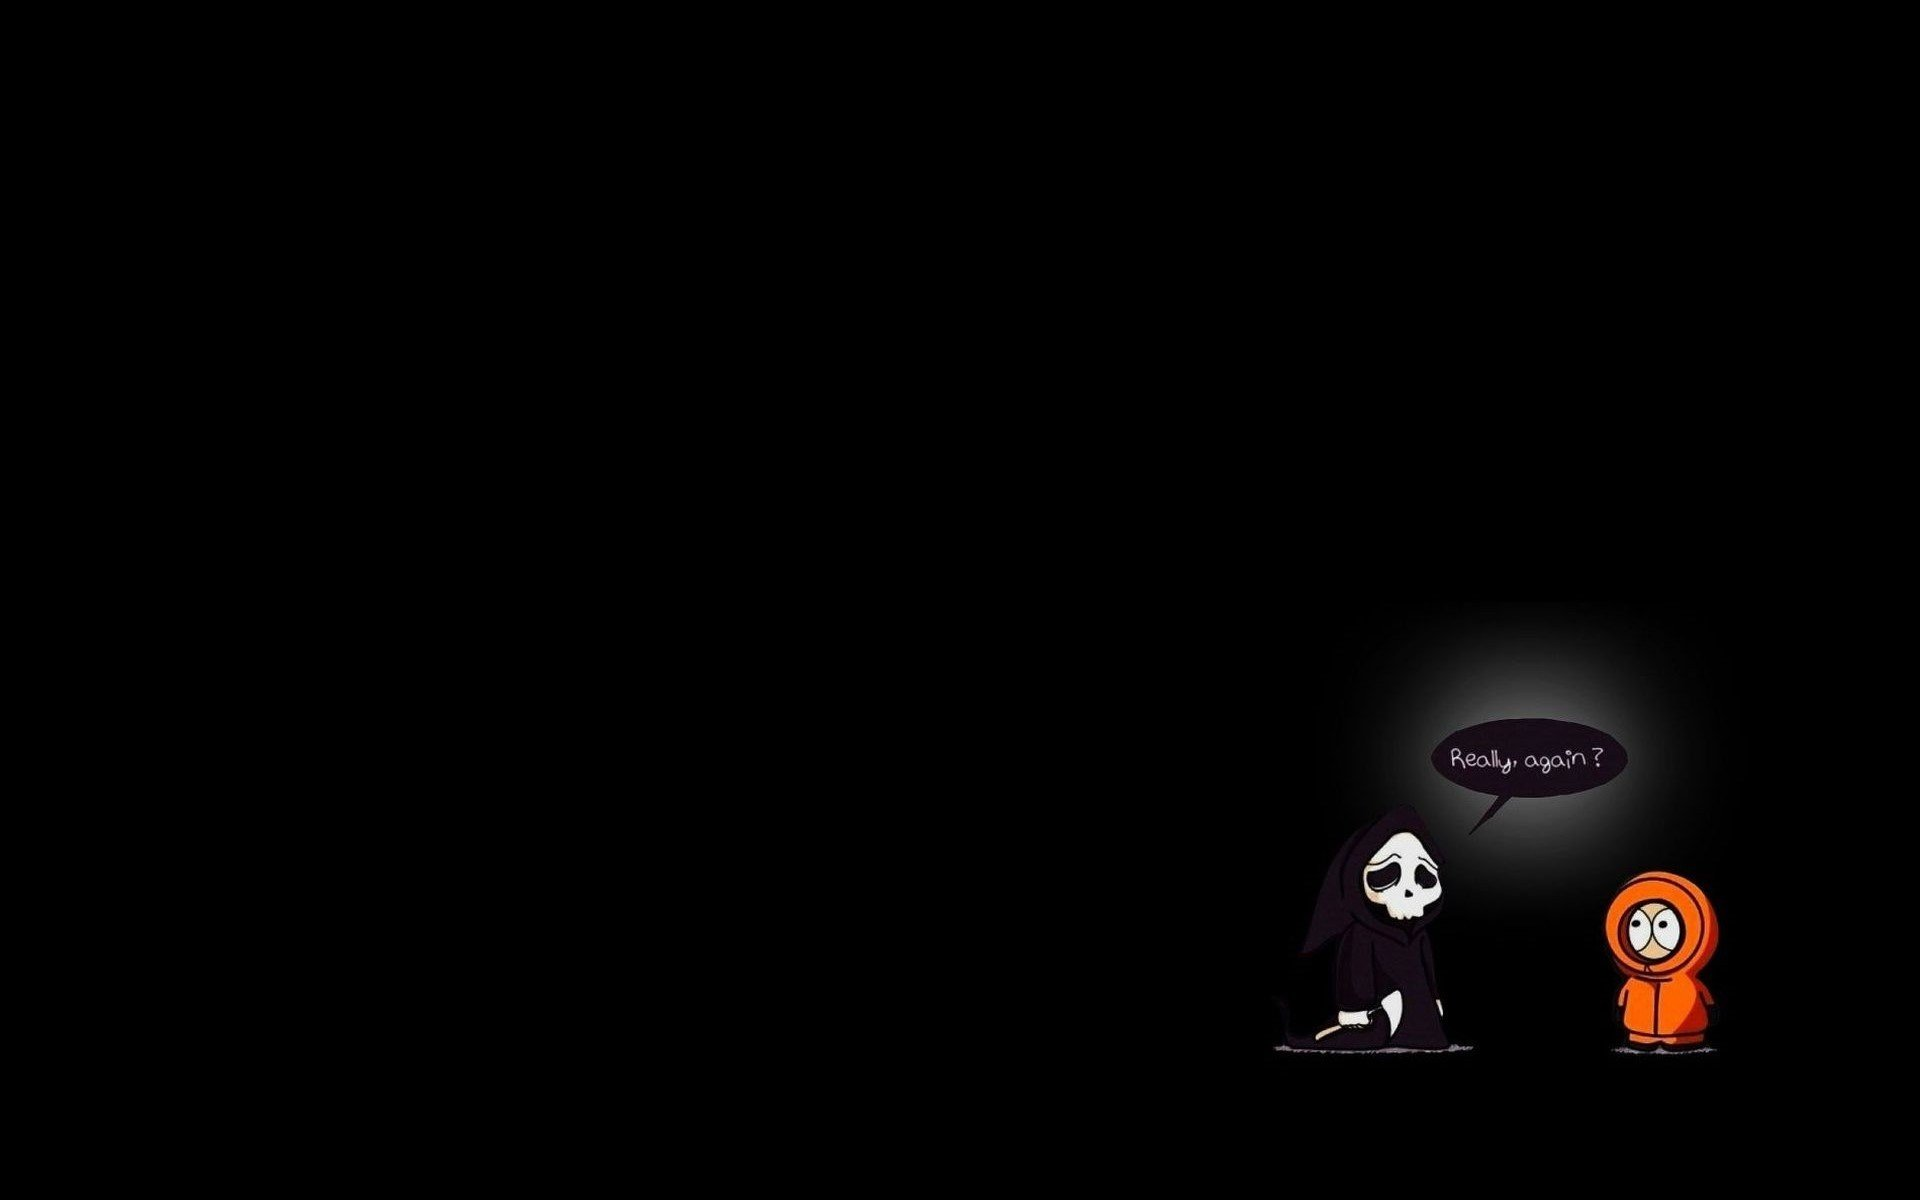 South Park Funny Kenny McCormick Clean Wallpaper ...